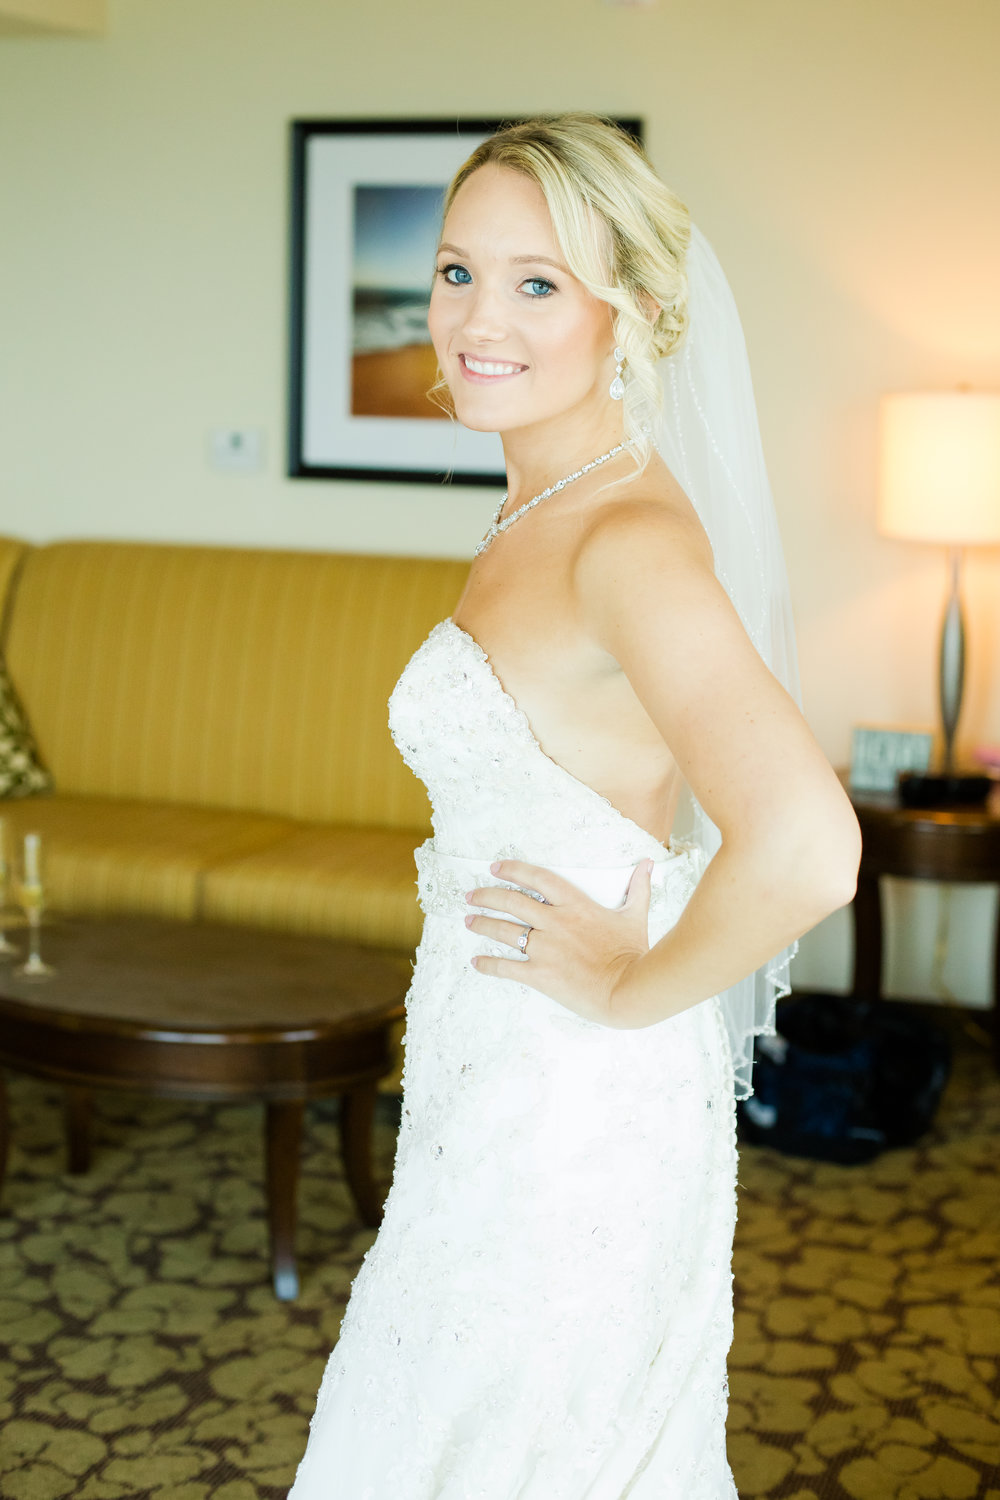 Downing_wedding_RachaelReidPhotography_-242.jpg